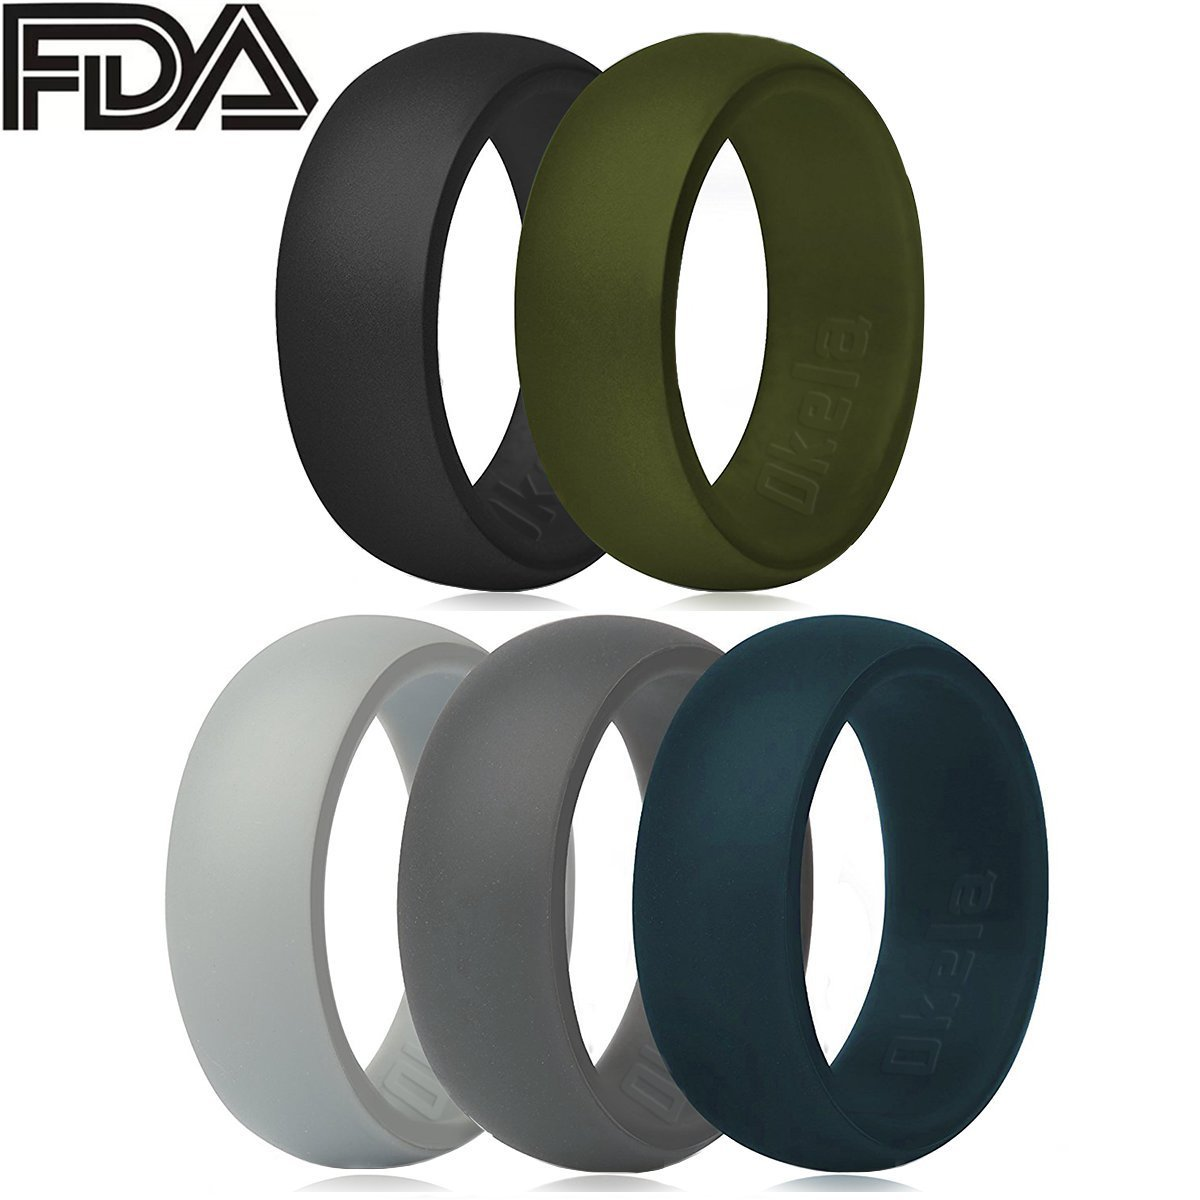 Fitness /… OKELA Silicone Wedding Rings Premium Medical Grade Silicone Wedding Bands for Active Men//Women Comfortable and Non-Toxic Rubber Ring for Daily Wear Travel Work